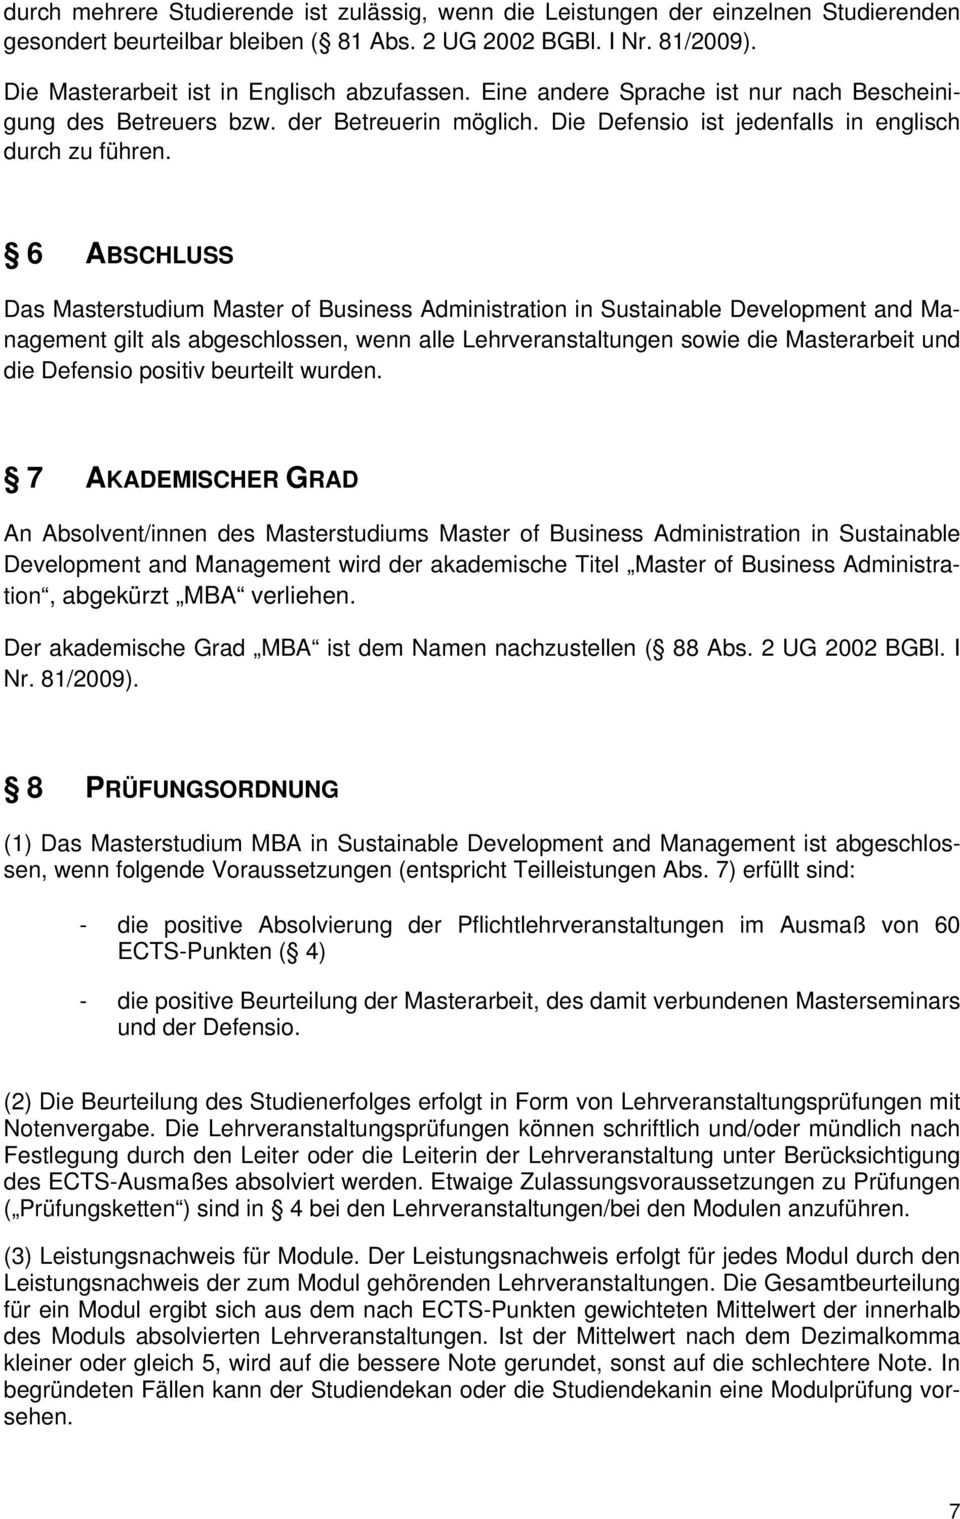 6 ABSCHLUSS Das Masterstudium Master of Business Administration in Sustainable Development and Management gilt als abgeschlossen, wenn alle Lehrveranstaltungen sowie die Masterarbeit und die Defensio